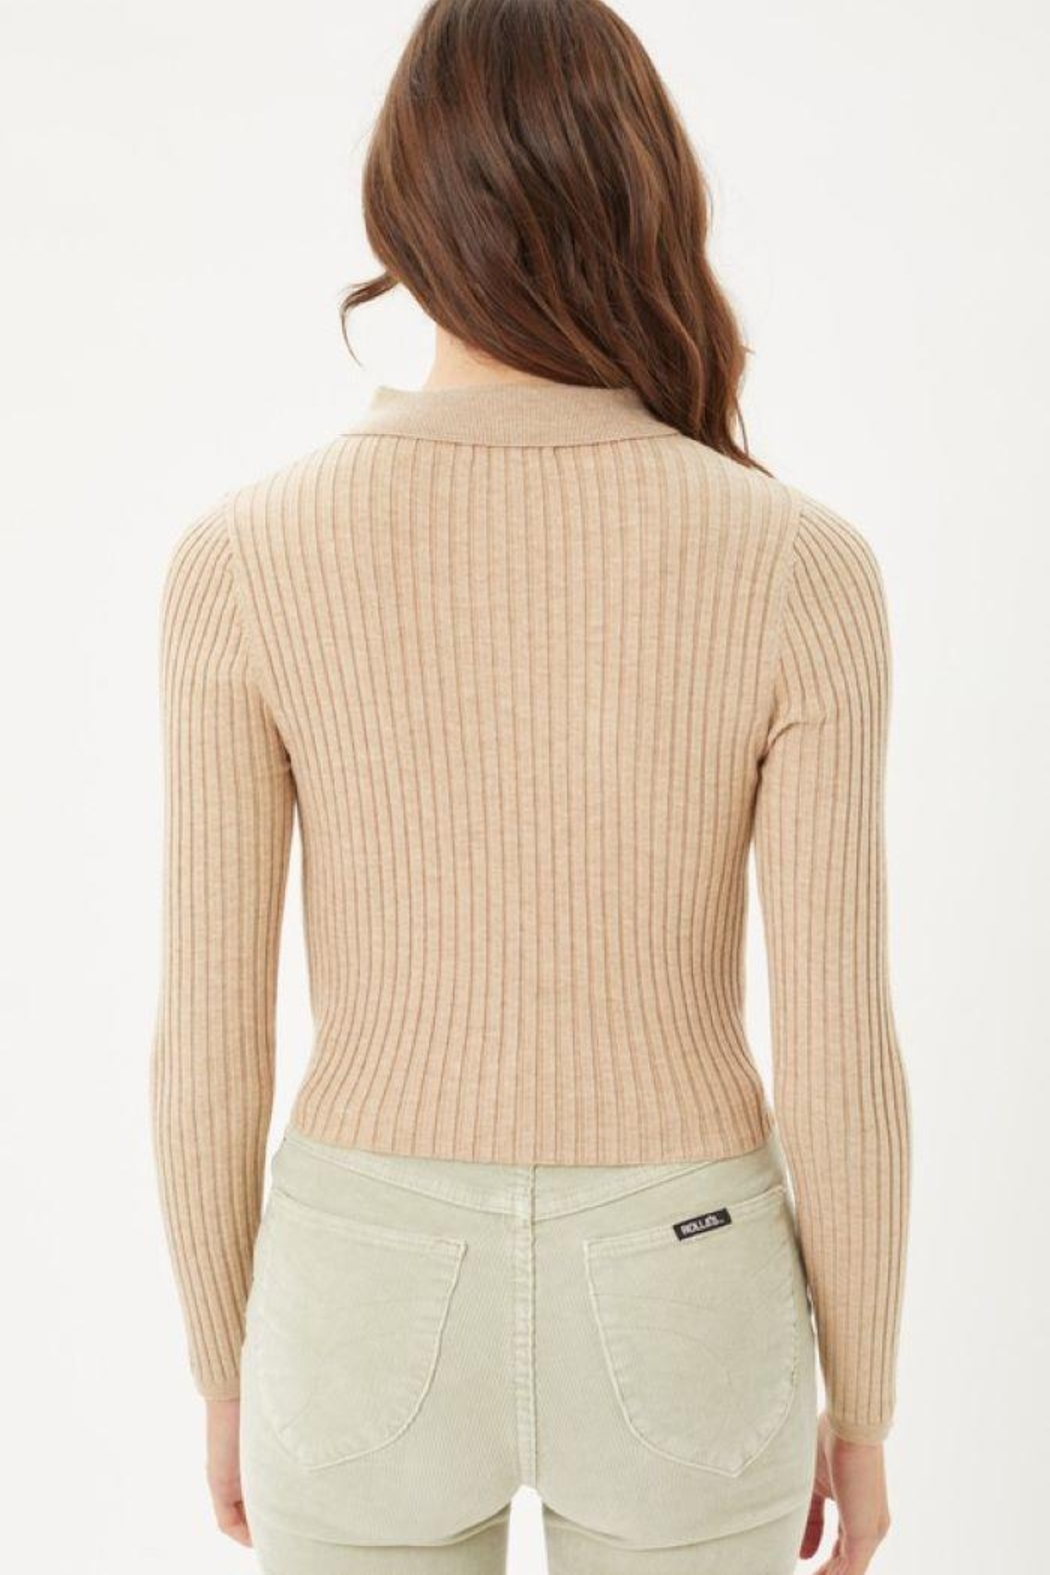 Love Tree Ribbed Collared Sweater Top - Back Cropped Image